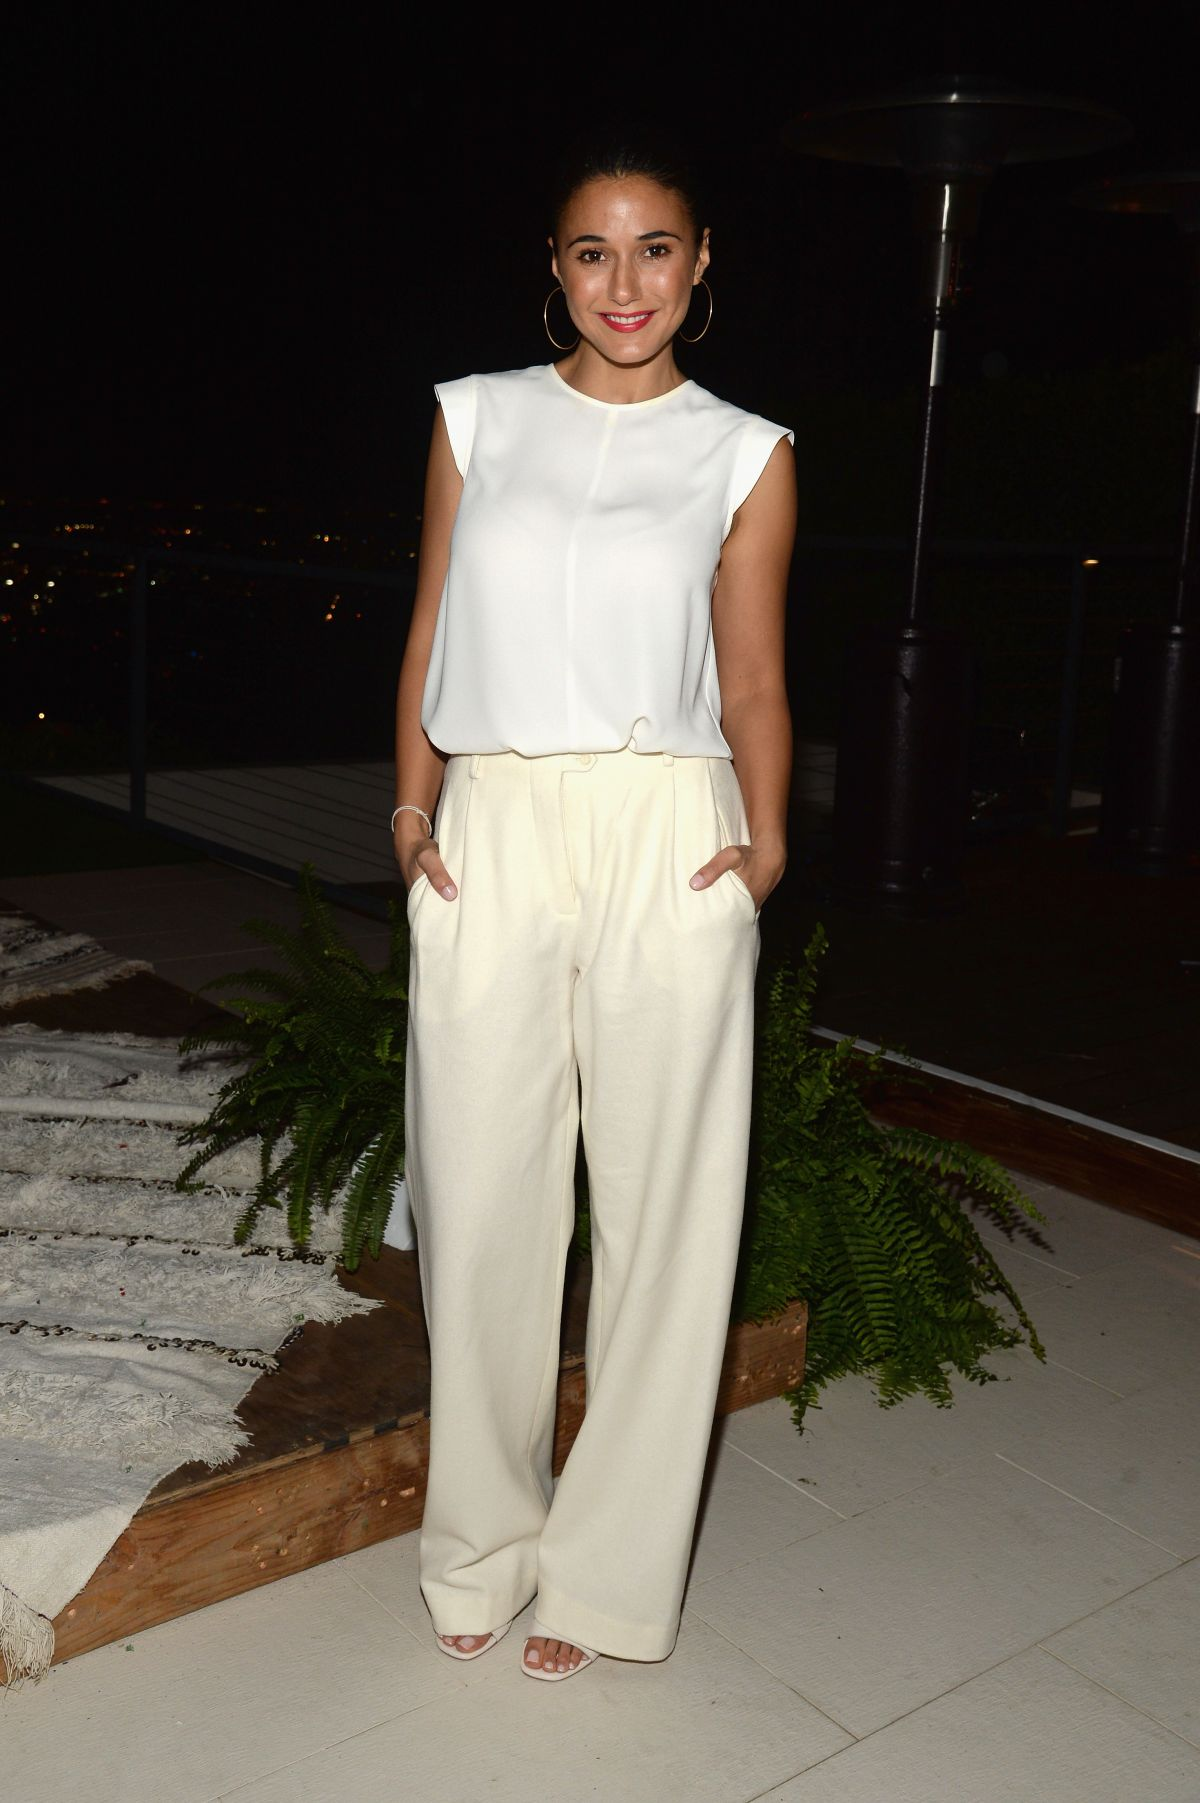 EMMANUELLE CHRIQUI at #letsbehonest Campaign Launch in Los Angeles 11/05/2015